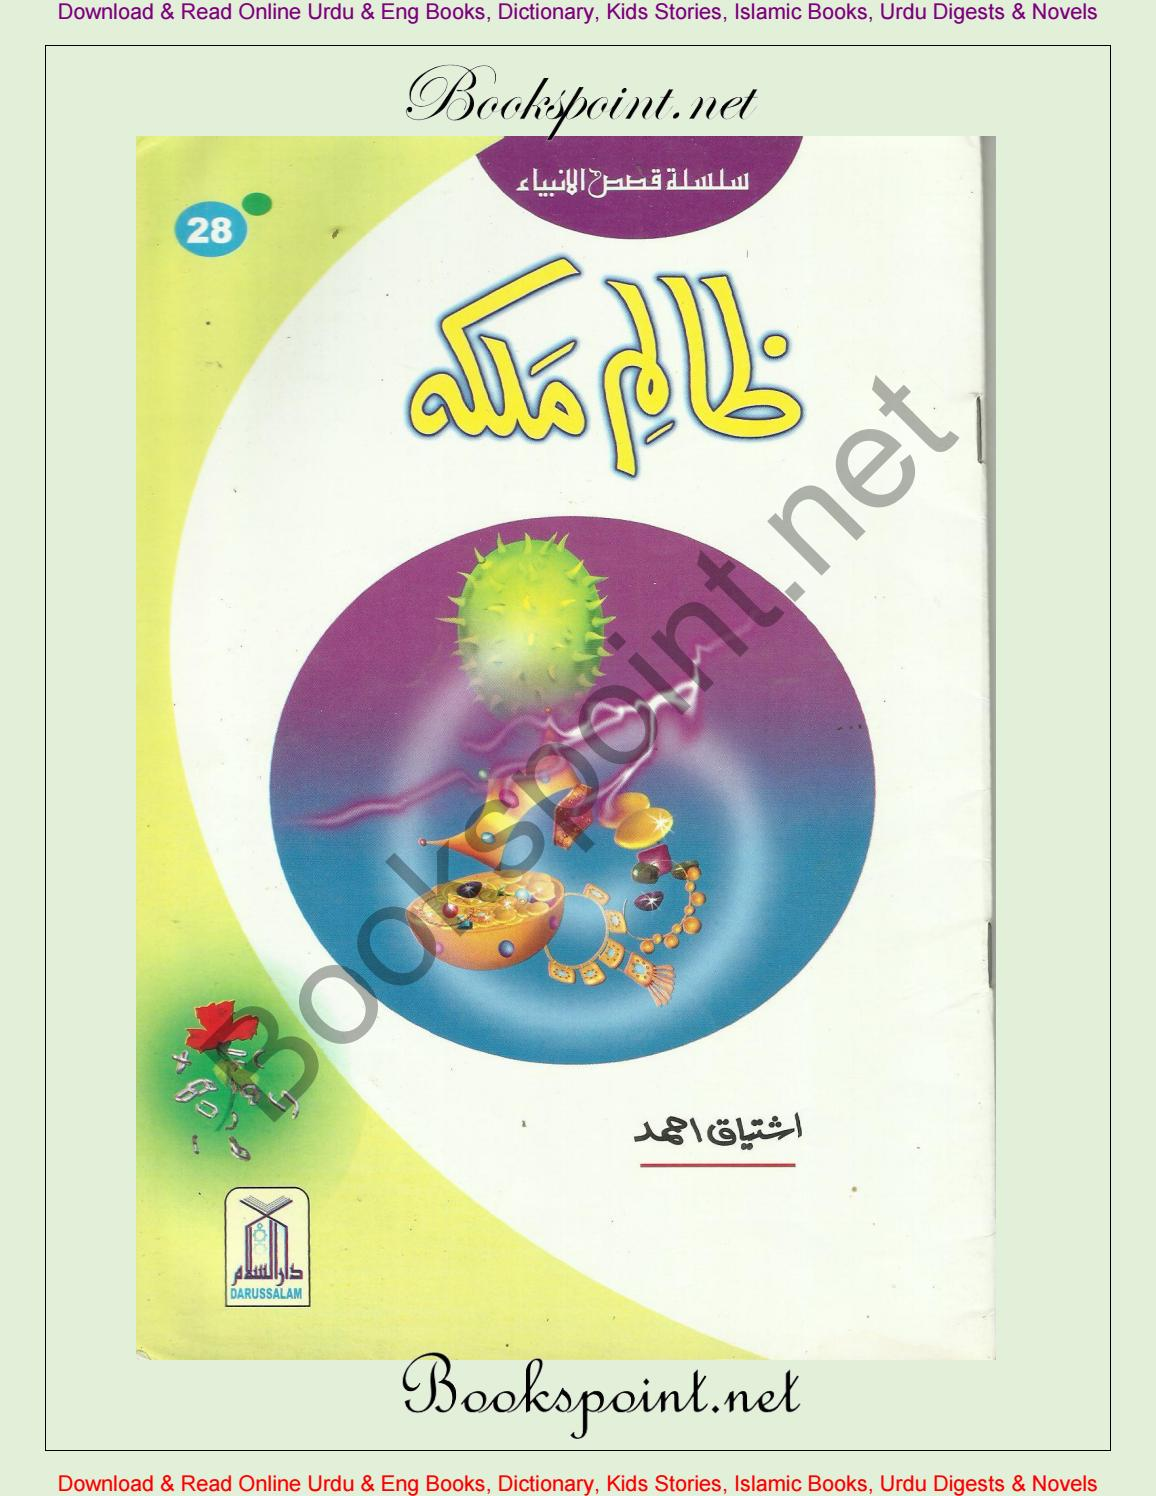 Zalim malka pdf book by asaboor - issuu